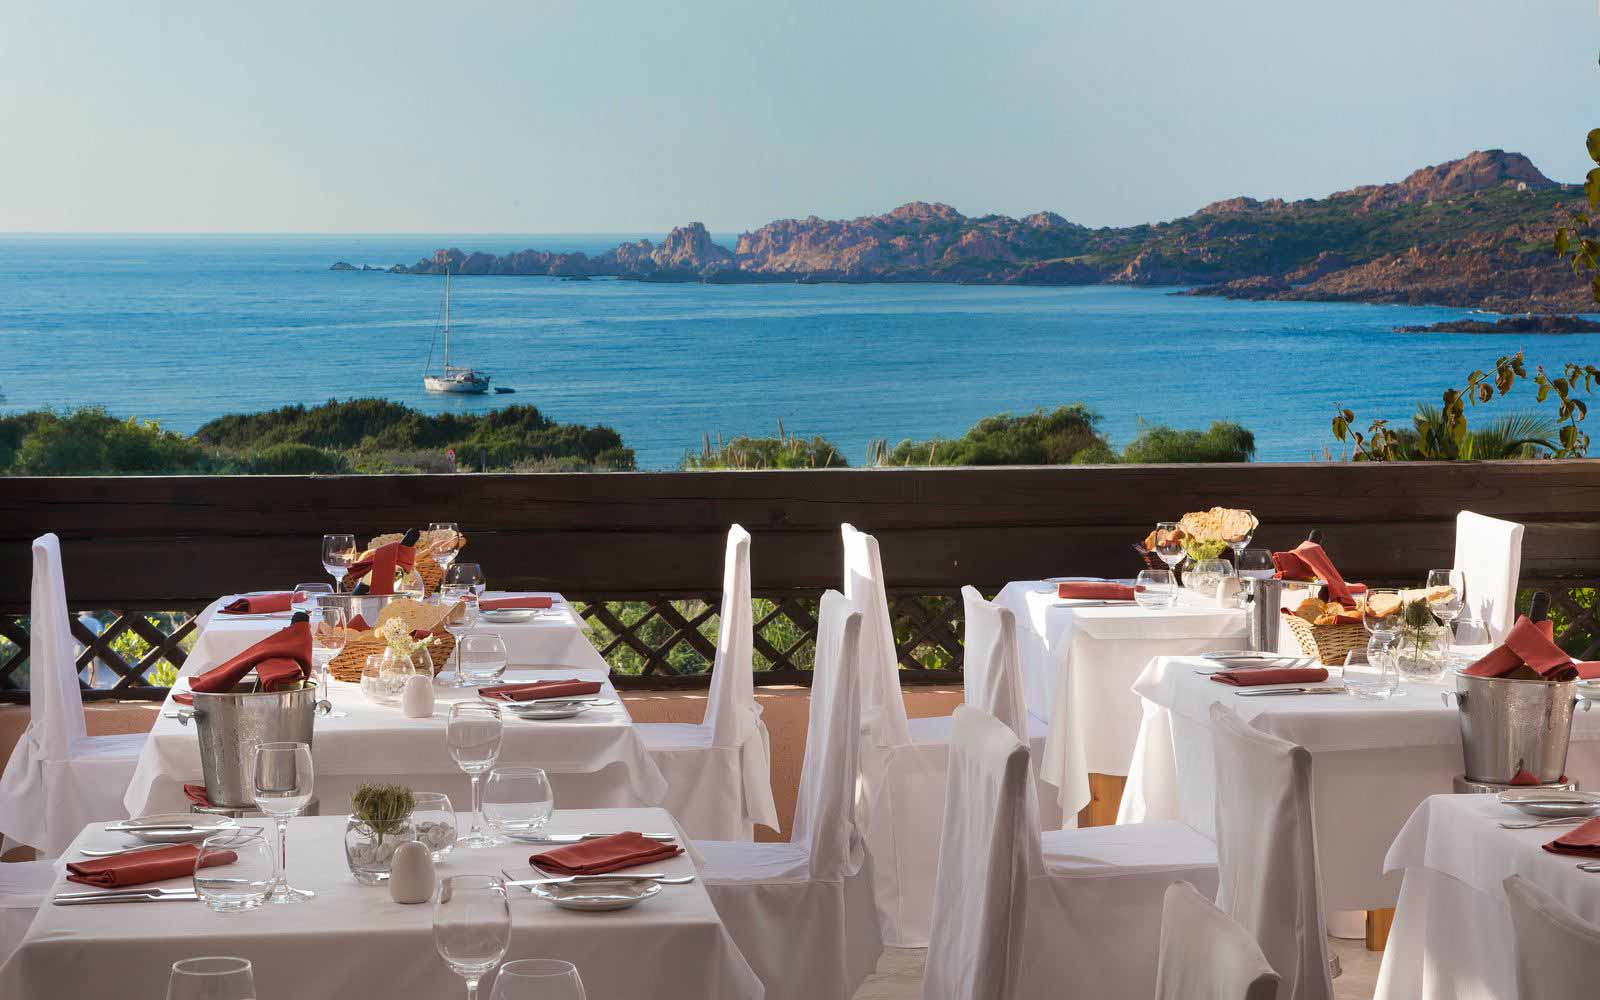 Canneddi Restaurant at Hotel Marinedda Thalasso & Spa